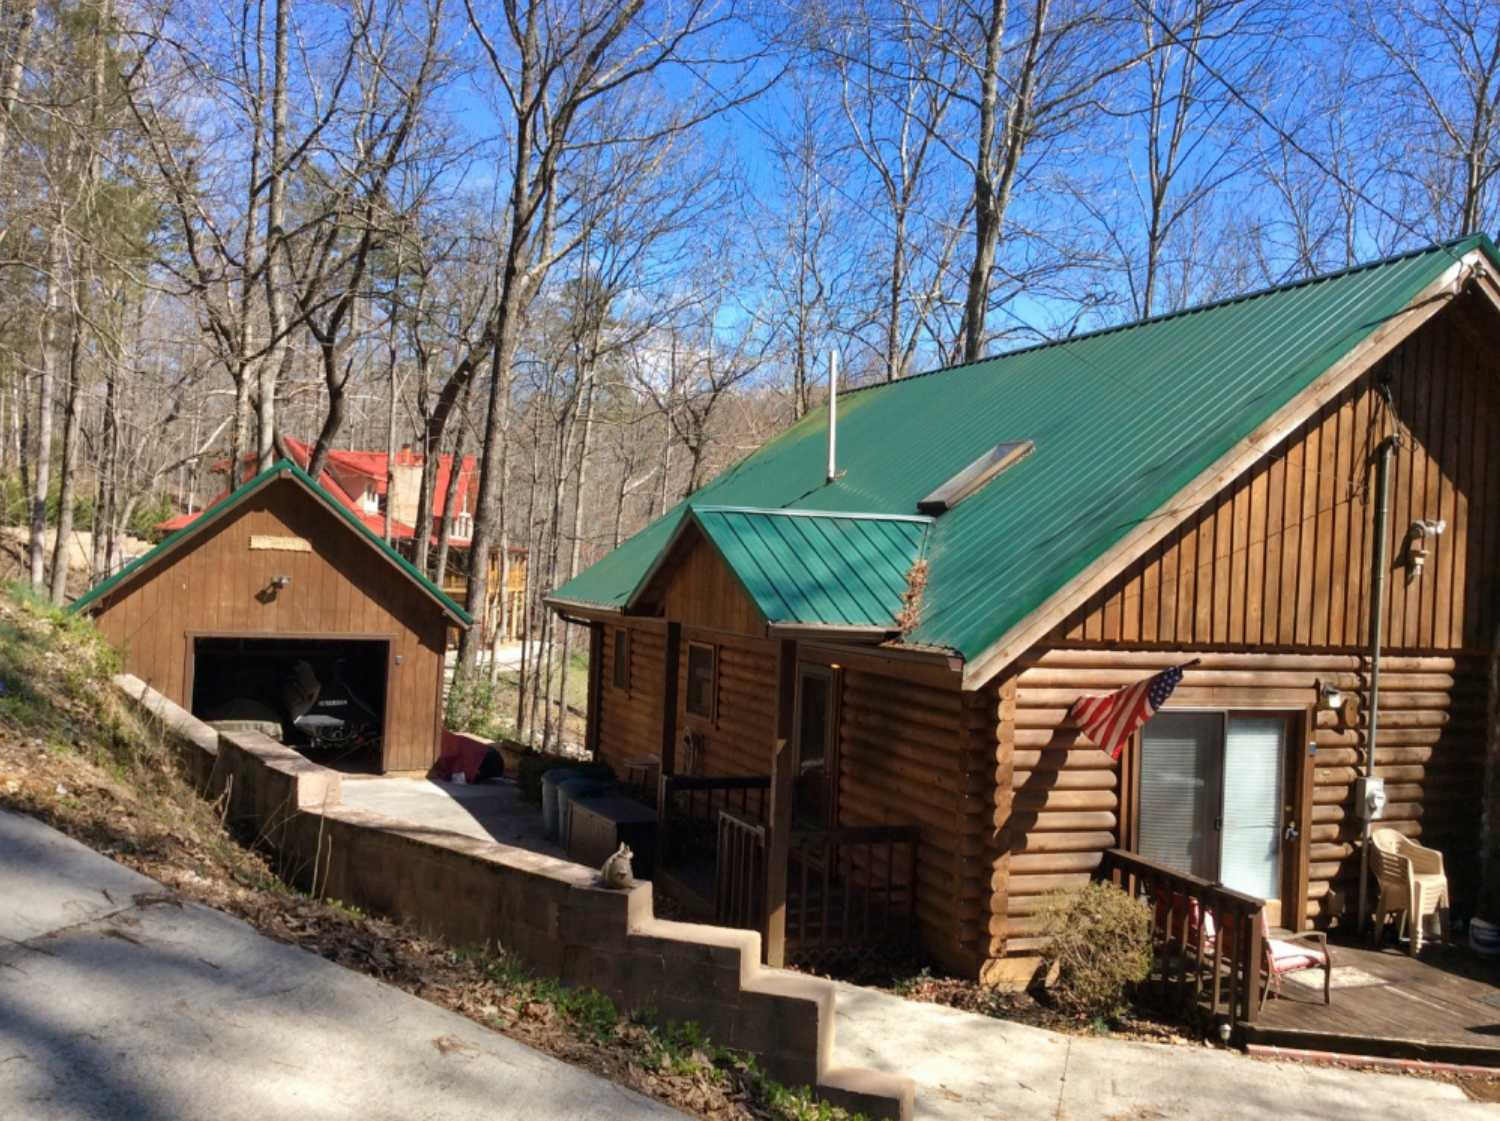 Lakefront log cabin with two car garage and plenty of space to entertain family and friends